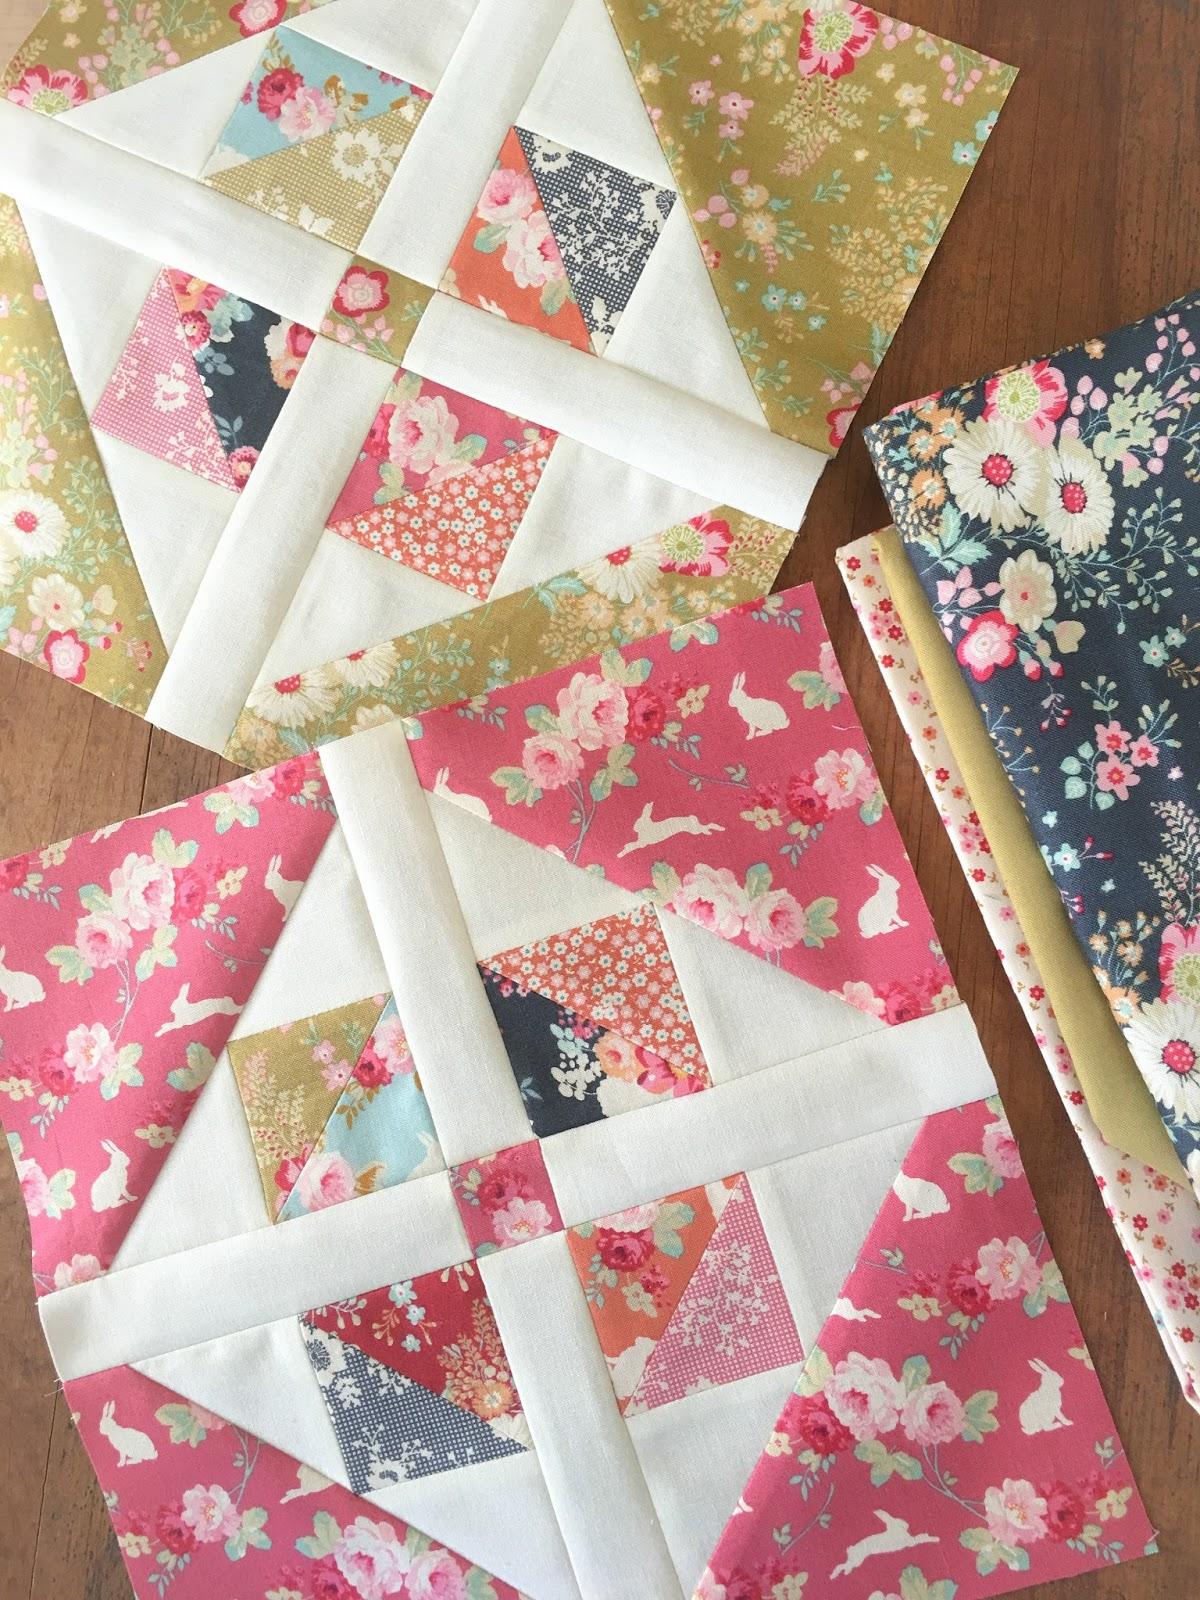 Carried Away Quilting: Window Garden pattern: Making a layer cake quilt using fat quarters